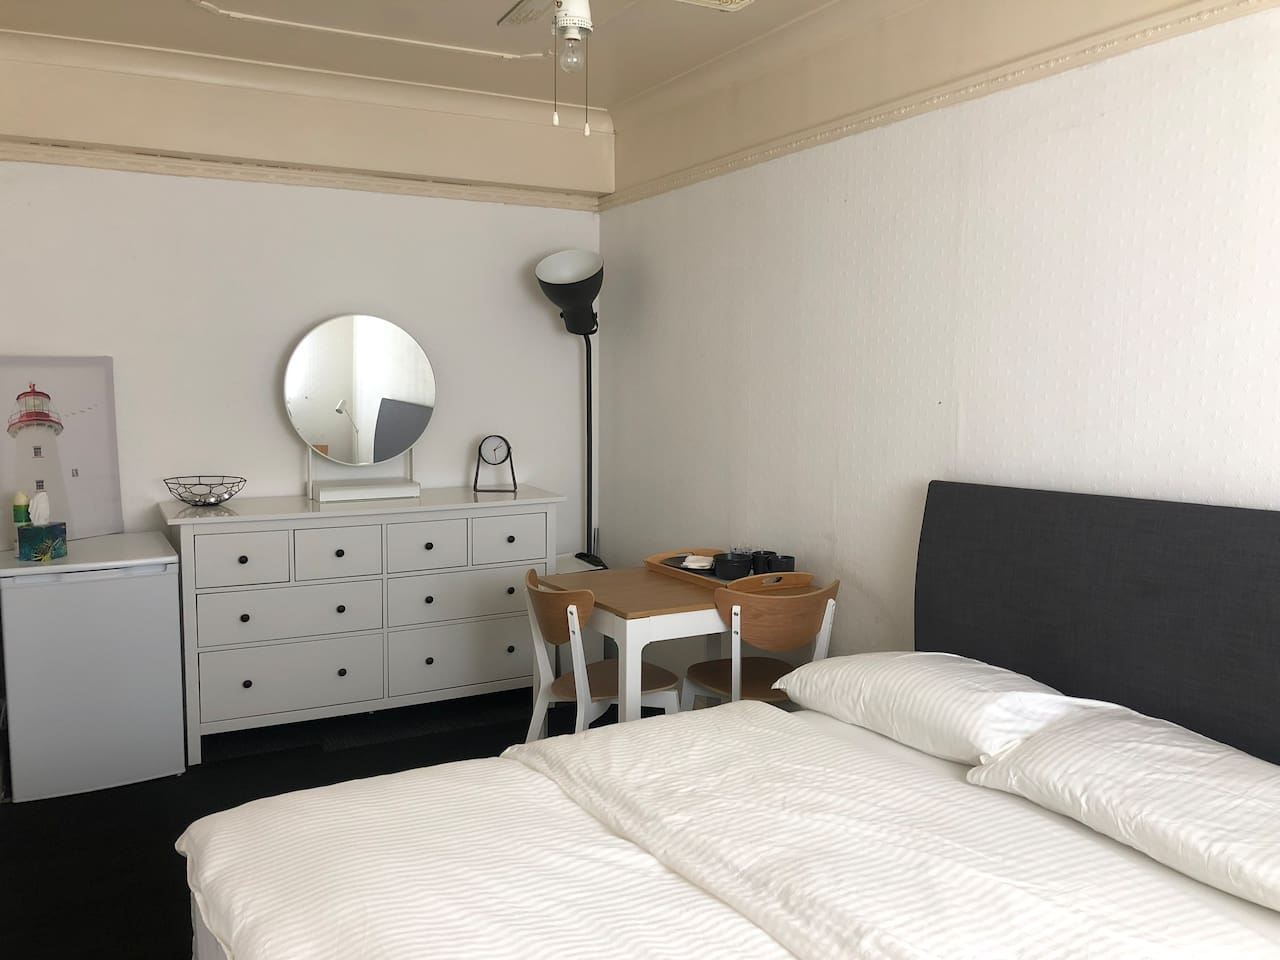 Spacious Double Room with King Size Bed, Dining Table, Chest of Drawers, Fridge/Freezer, Iron and other essentials.  WiFi   Free Parking  Wireless phone charger